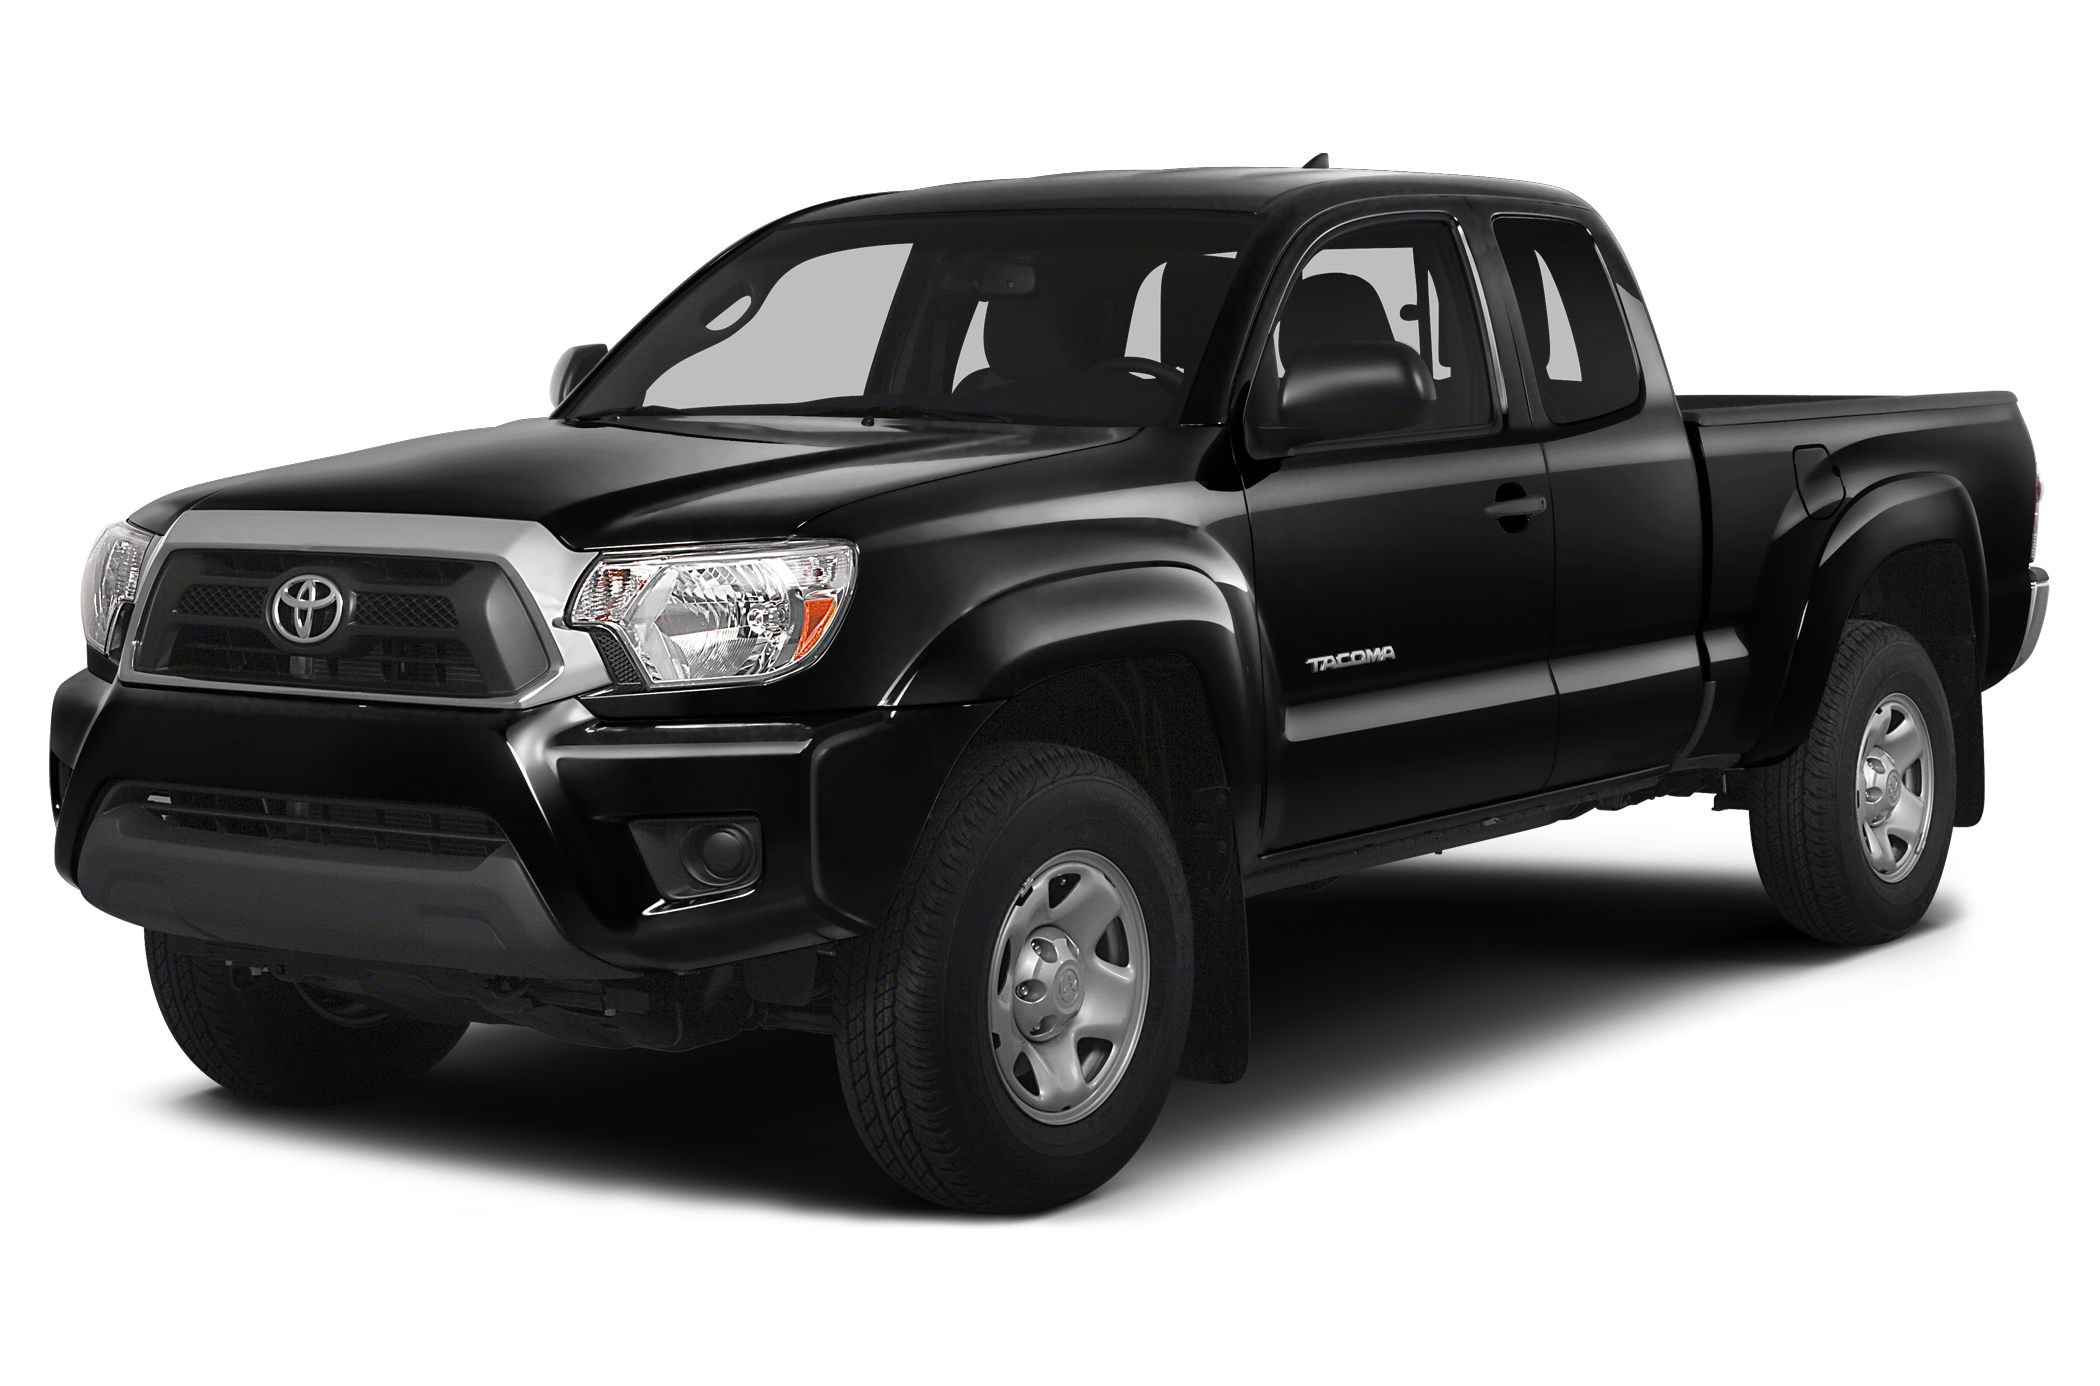 2015 Toyota Tacoma Diagram - Product Wiring Diagrams •